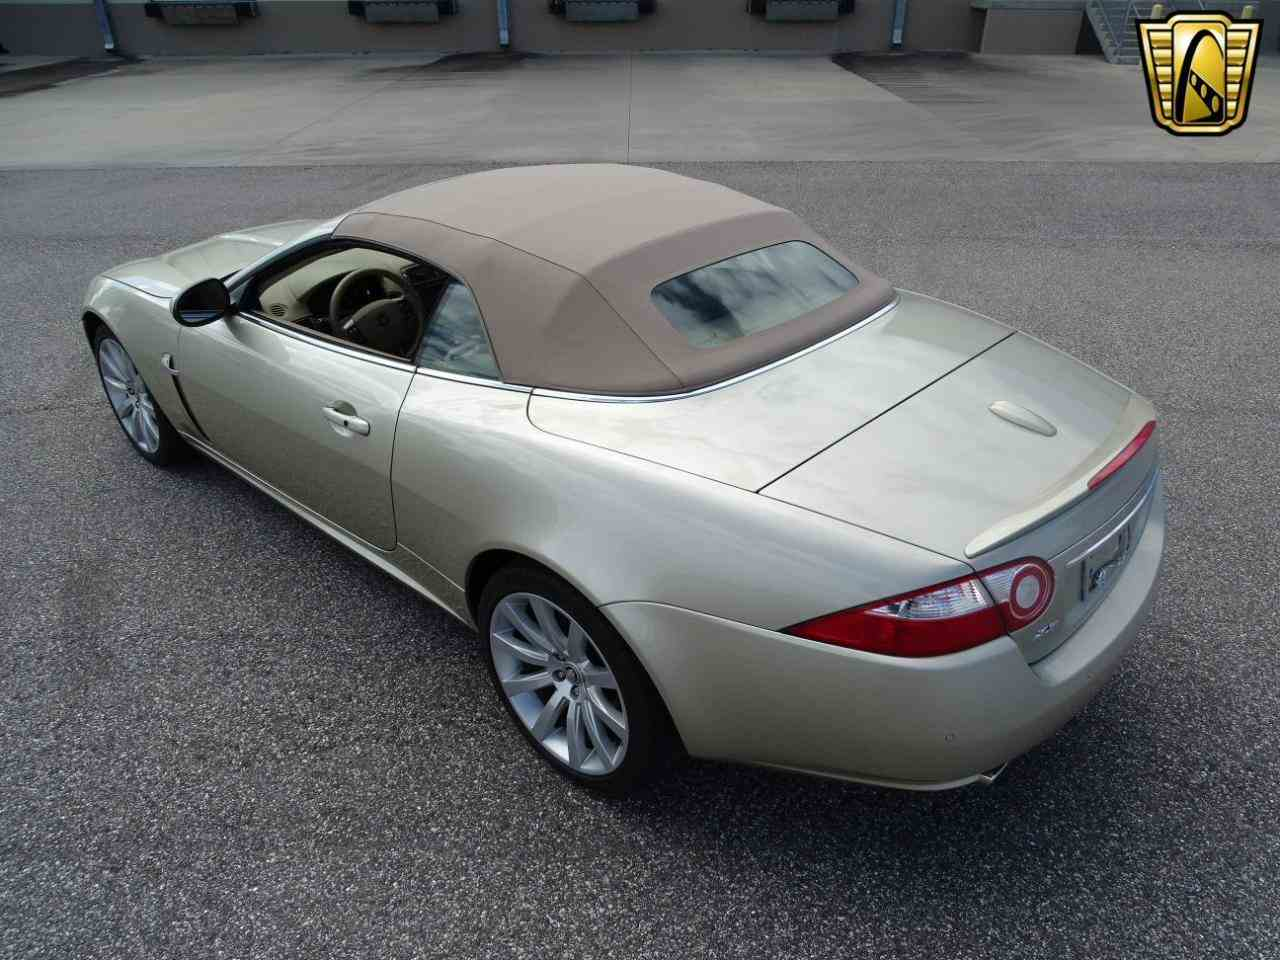 Large Picture of '08 Jaguar XK located in Florida - $25,995.00 Offered by Gateway Classic Cars - Tampa - KPQW